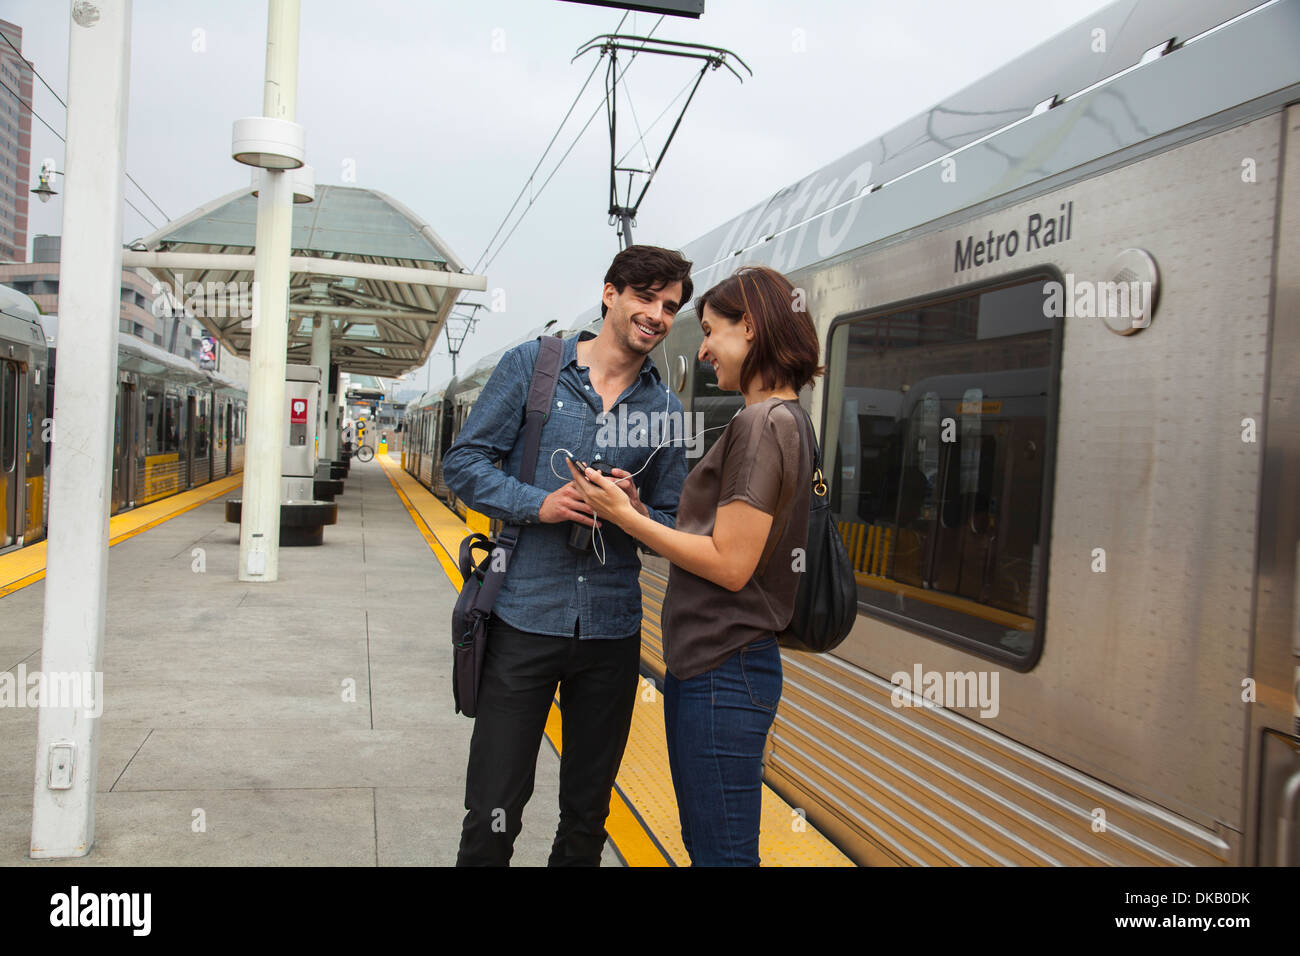 Couple listening to shared earphones at station, Los Angeles, California, USA Stock Photo